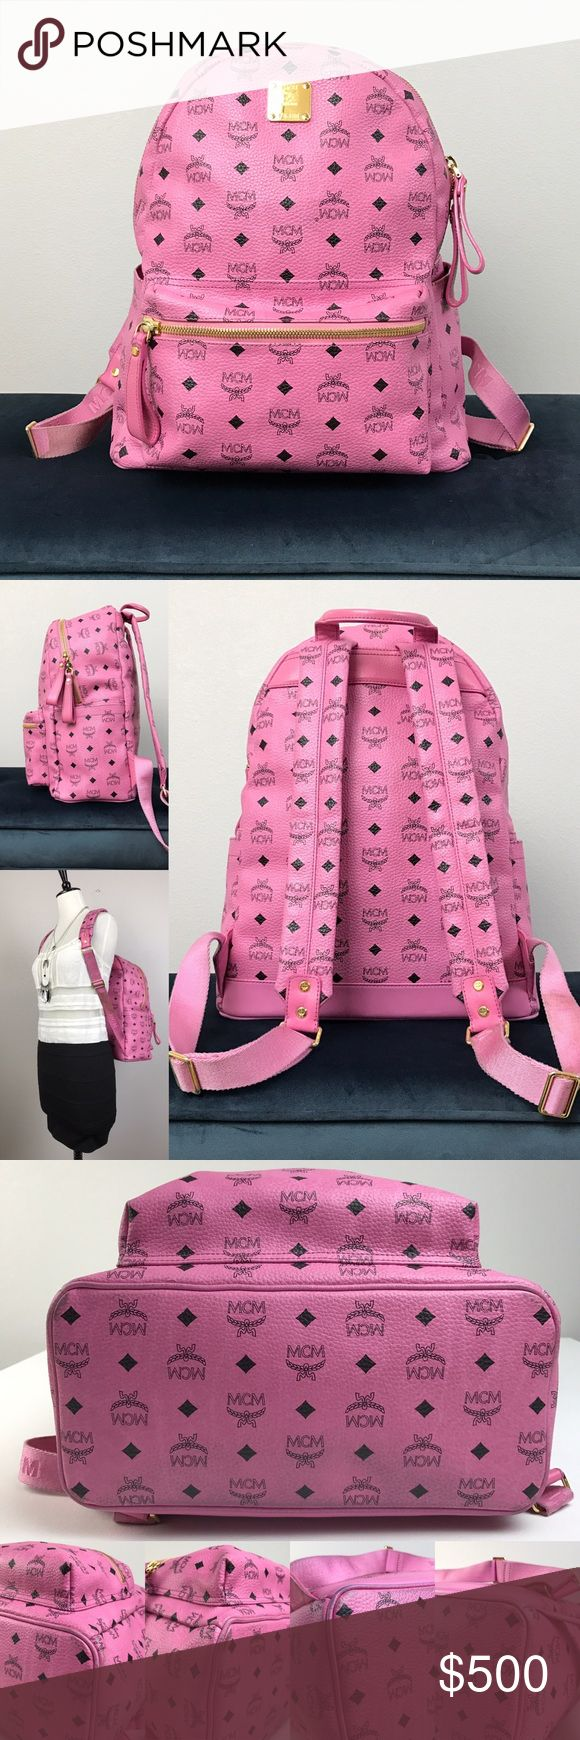 """MCM Visetos Medium Pink Backpack MCM Visetos Medium  Pink Backpack. MCM Monogram-stamped coated canvas, gold logo plaque, top handle, adjustable padded shoulder straps, two-way top zip closure & front zip pocket.  Interior features signature lining, padded laptop sleeve, zip pocket & slip pocket.     In great pre-owned condition.  Stains and slight wears at the bottom and corners.  Minor scuffs on the exterior, minor interior lining wear, stains on the straps.      Dimension:   13"""" L x 6"""" W…"""